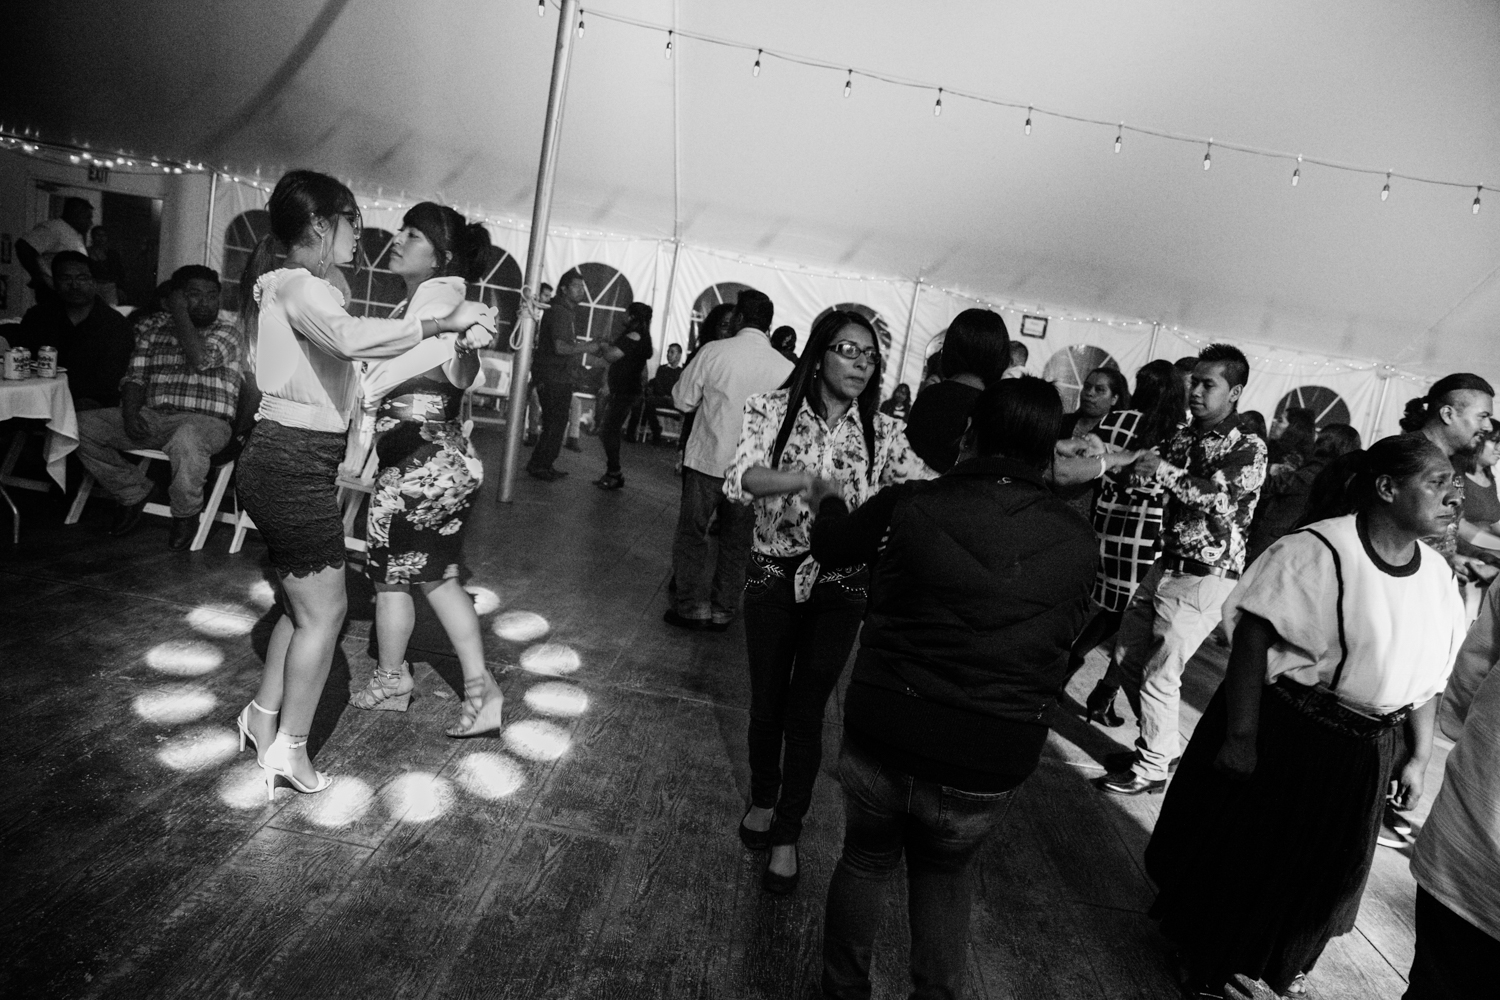 Fiestas continue as a way for the immigrant community to reunite as regularly as possible. Milwaukee, Wisconsin, USA.